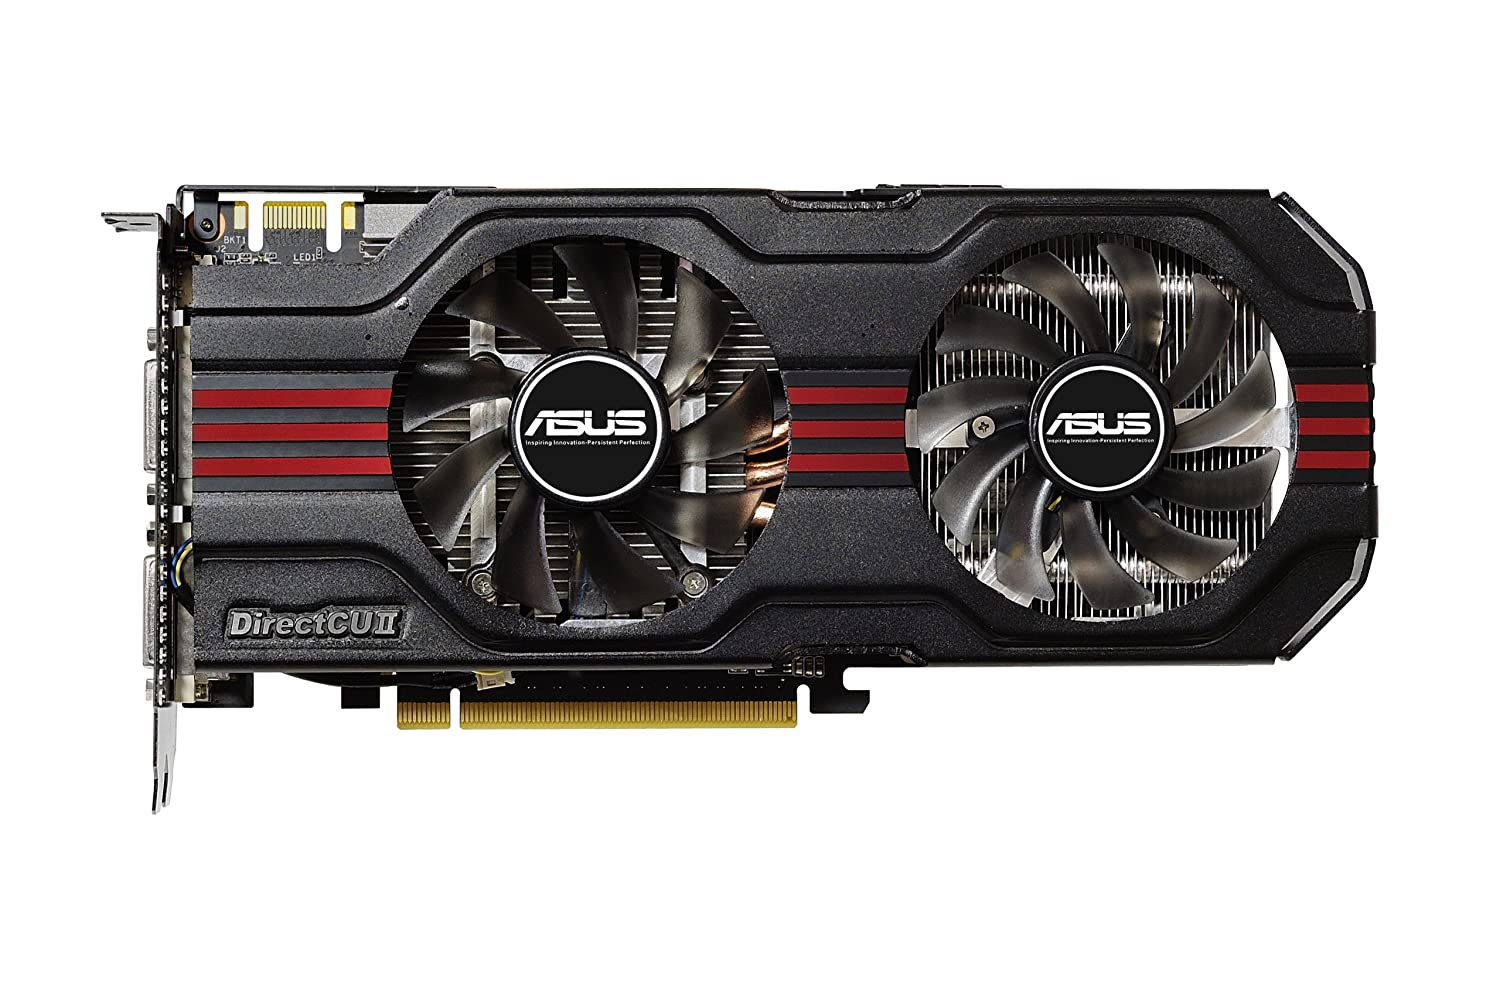 ASUS GEFORCE GTX560 ENGTX560 DCII OC2DI1GD5 DRIVERS FOR WINDOWS 8